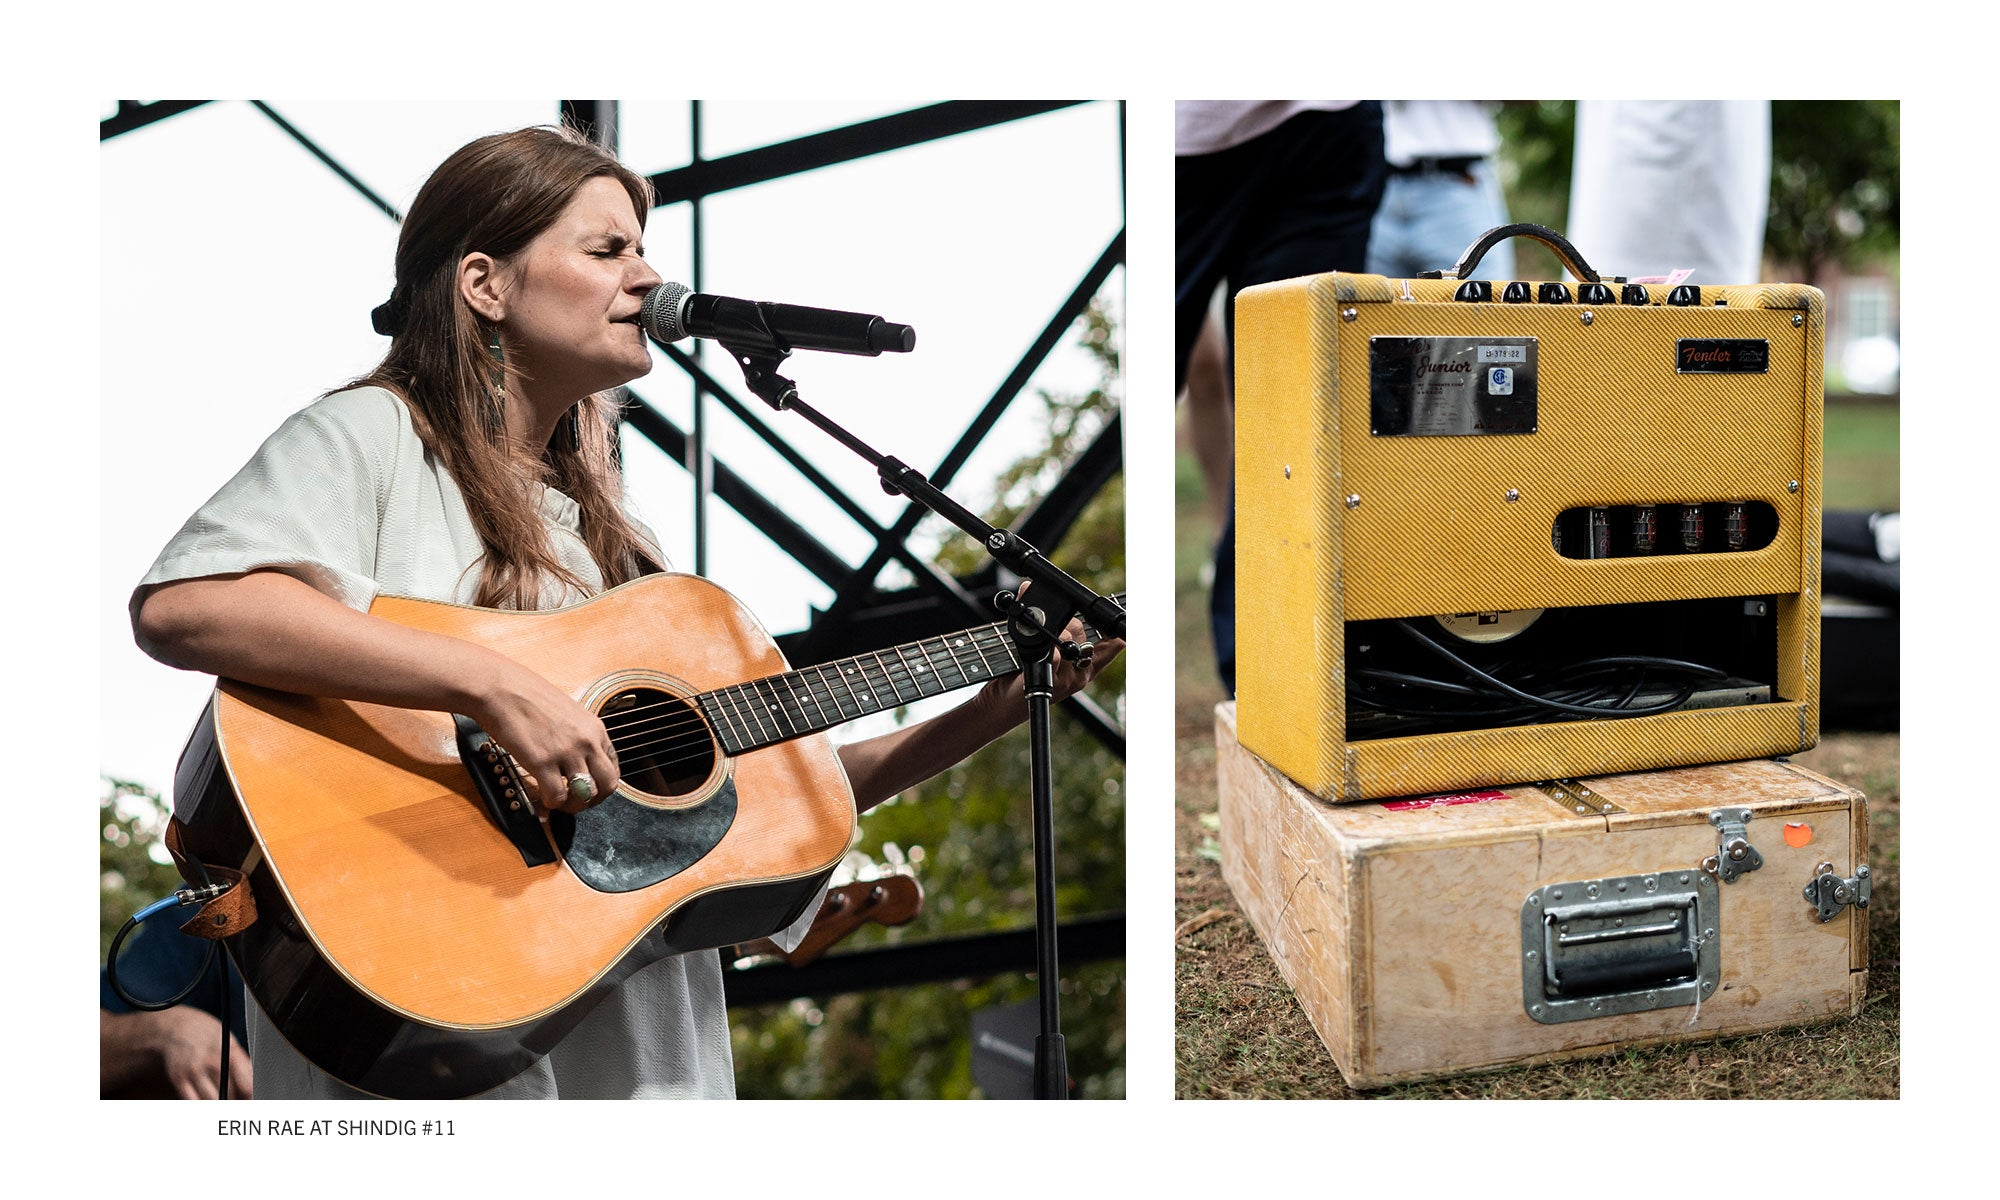 Singer / Songwriter Erin Rae playing live on stage at Shindig # 11 in 2019. Florence, AL.